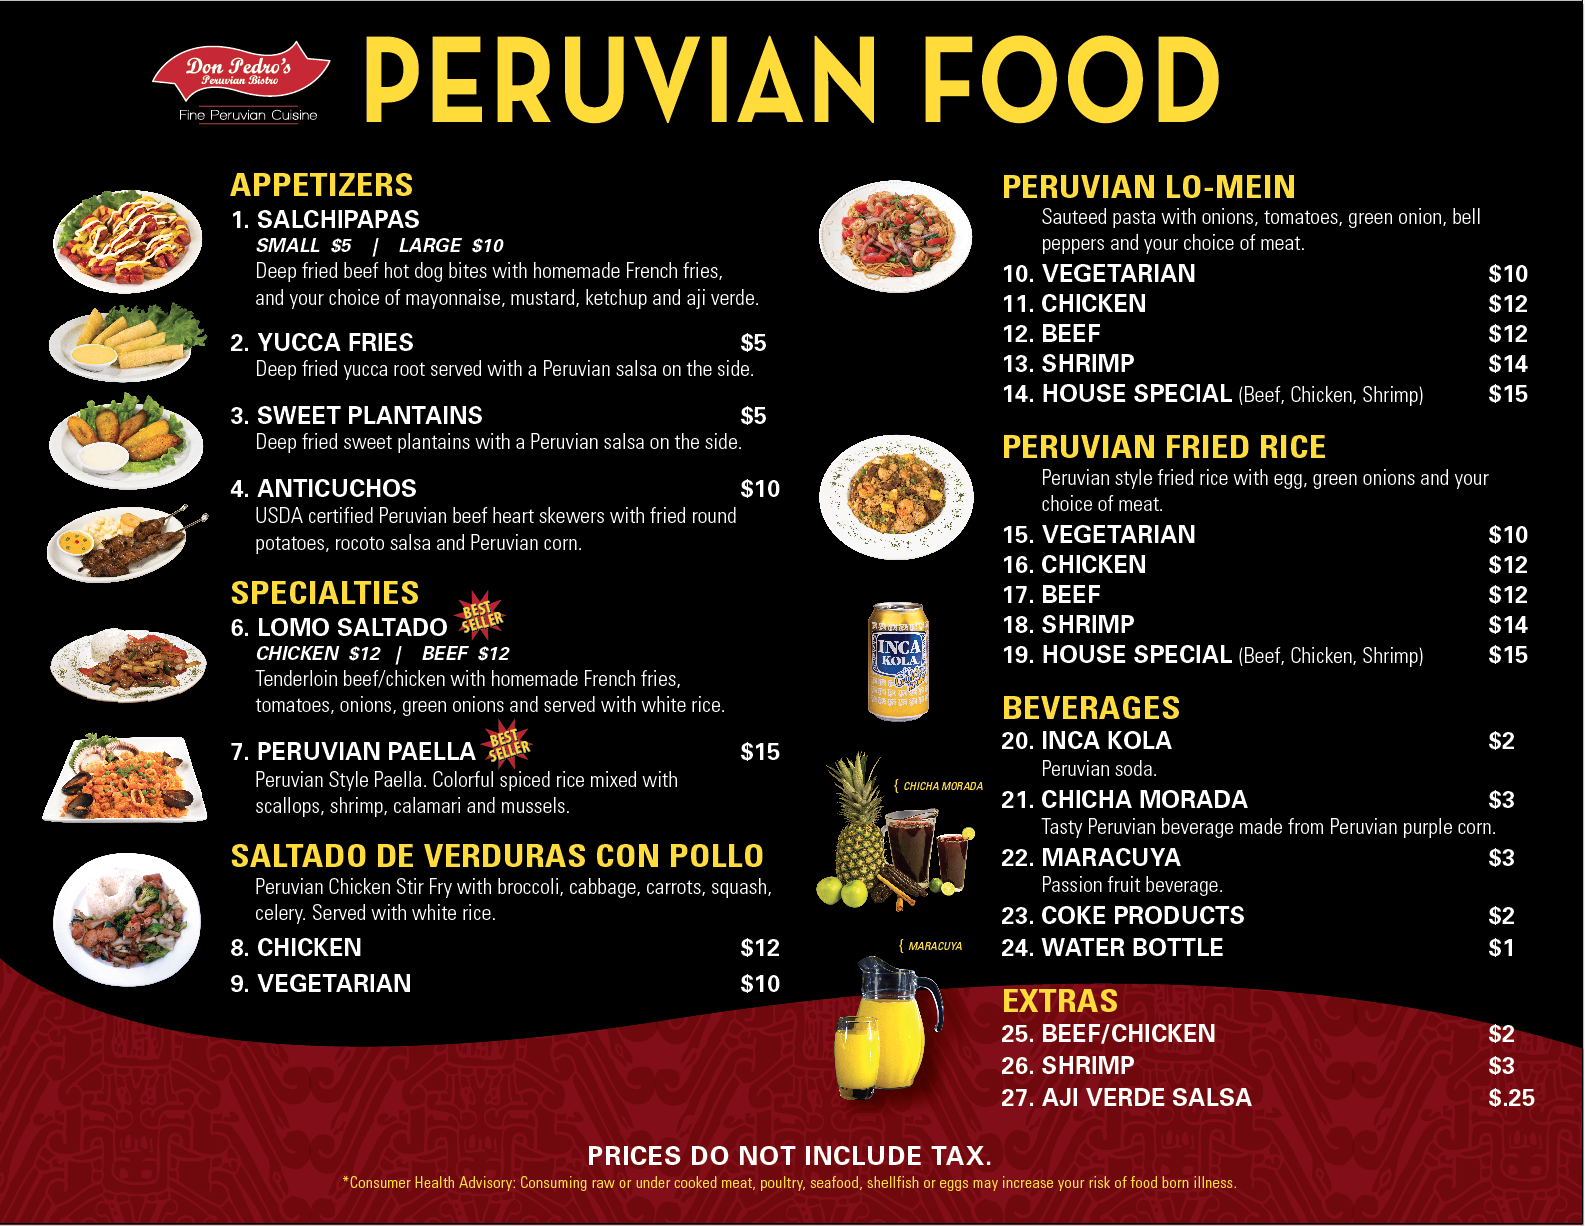 Tucson Food Truck Menu, Peruvian Food Tucson, Best food trucks Tucson